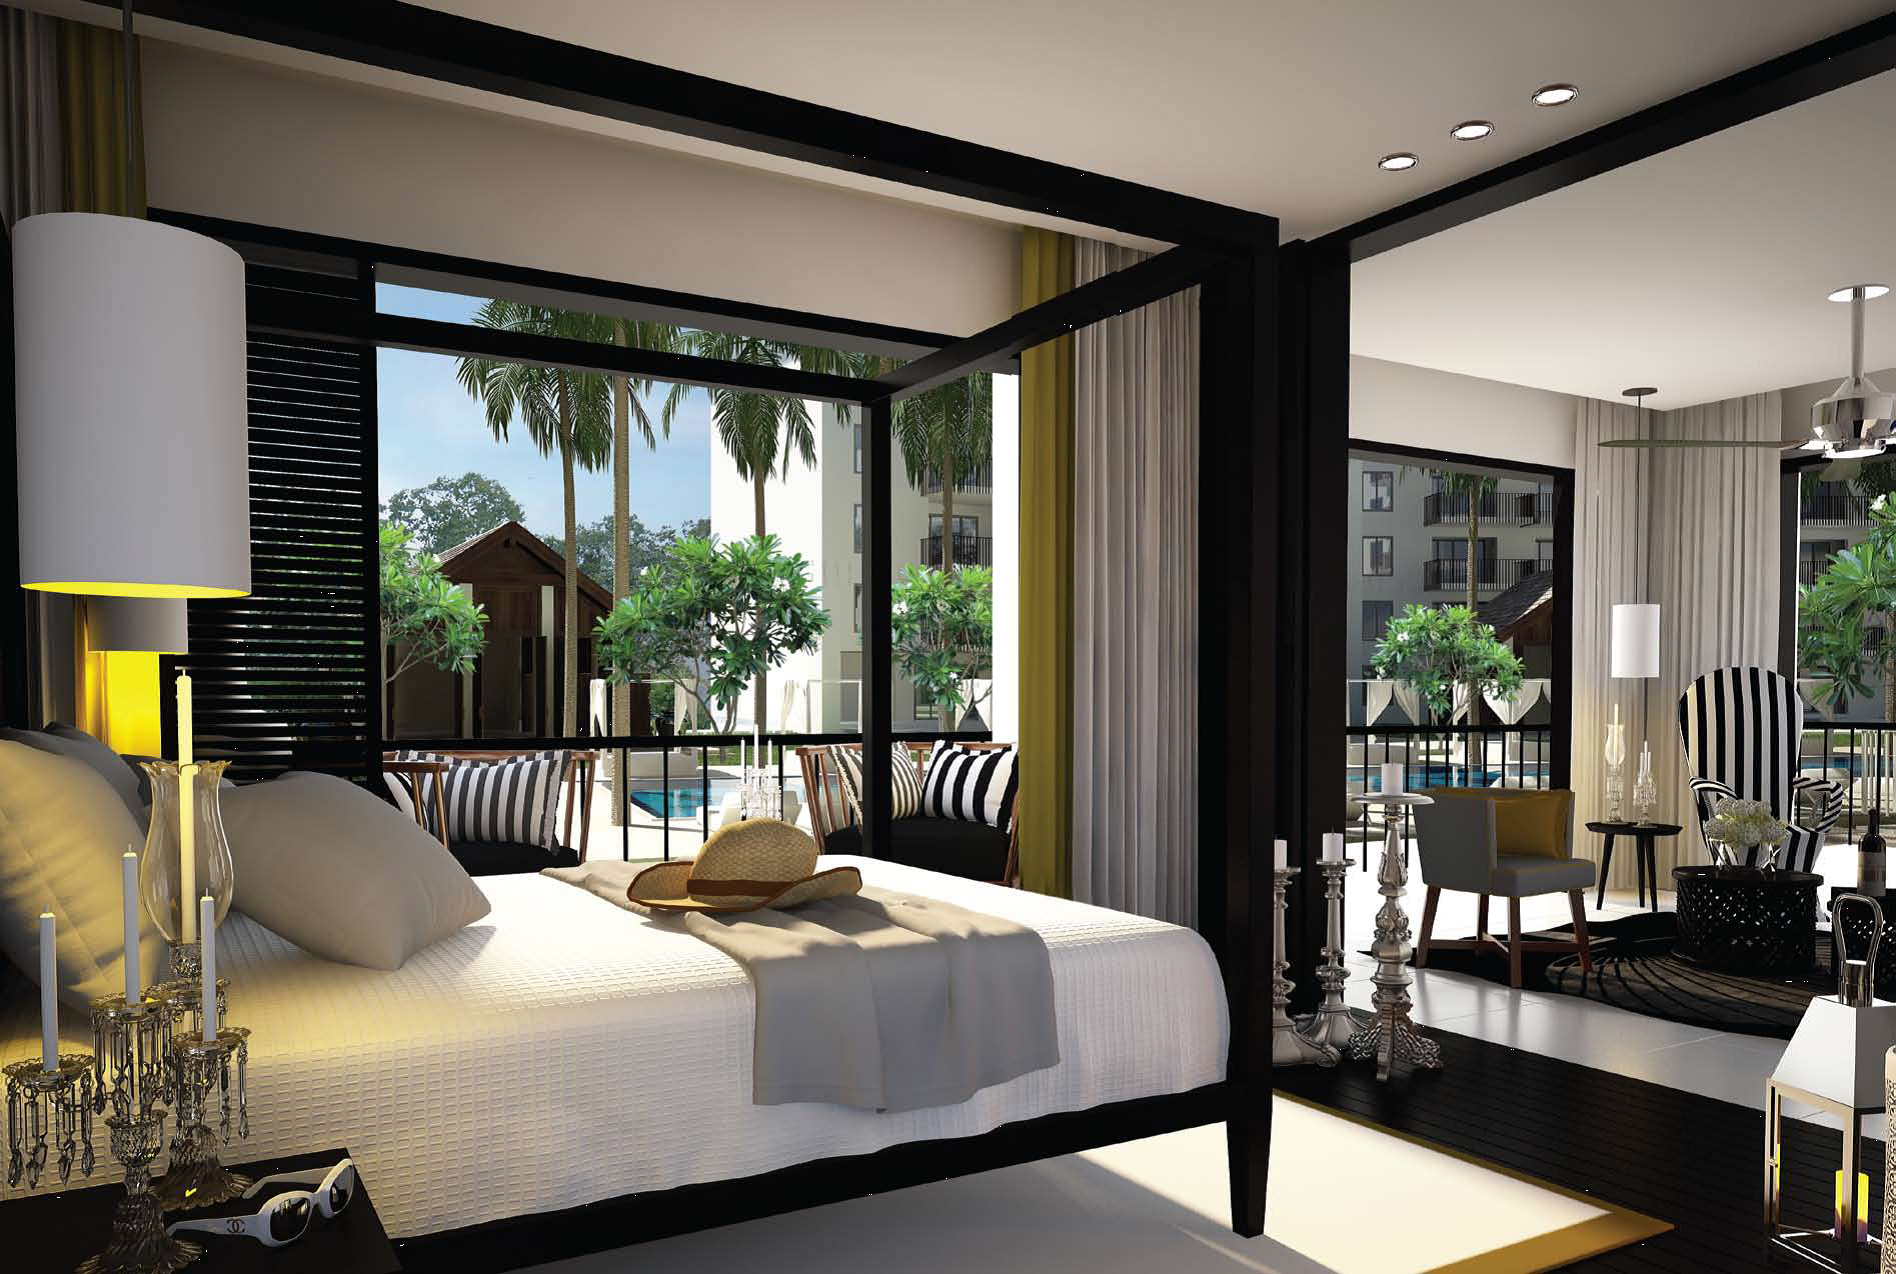 Caribbean Bedroom Design Brilliant Luxury Interior In The Caribbean  All About The Lavish And Design Inspiration